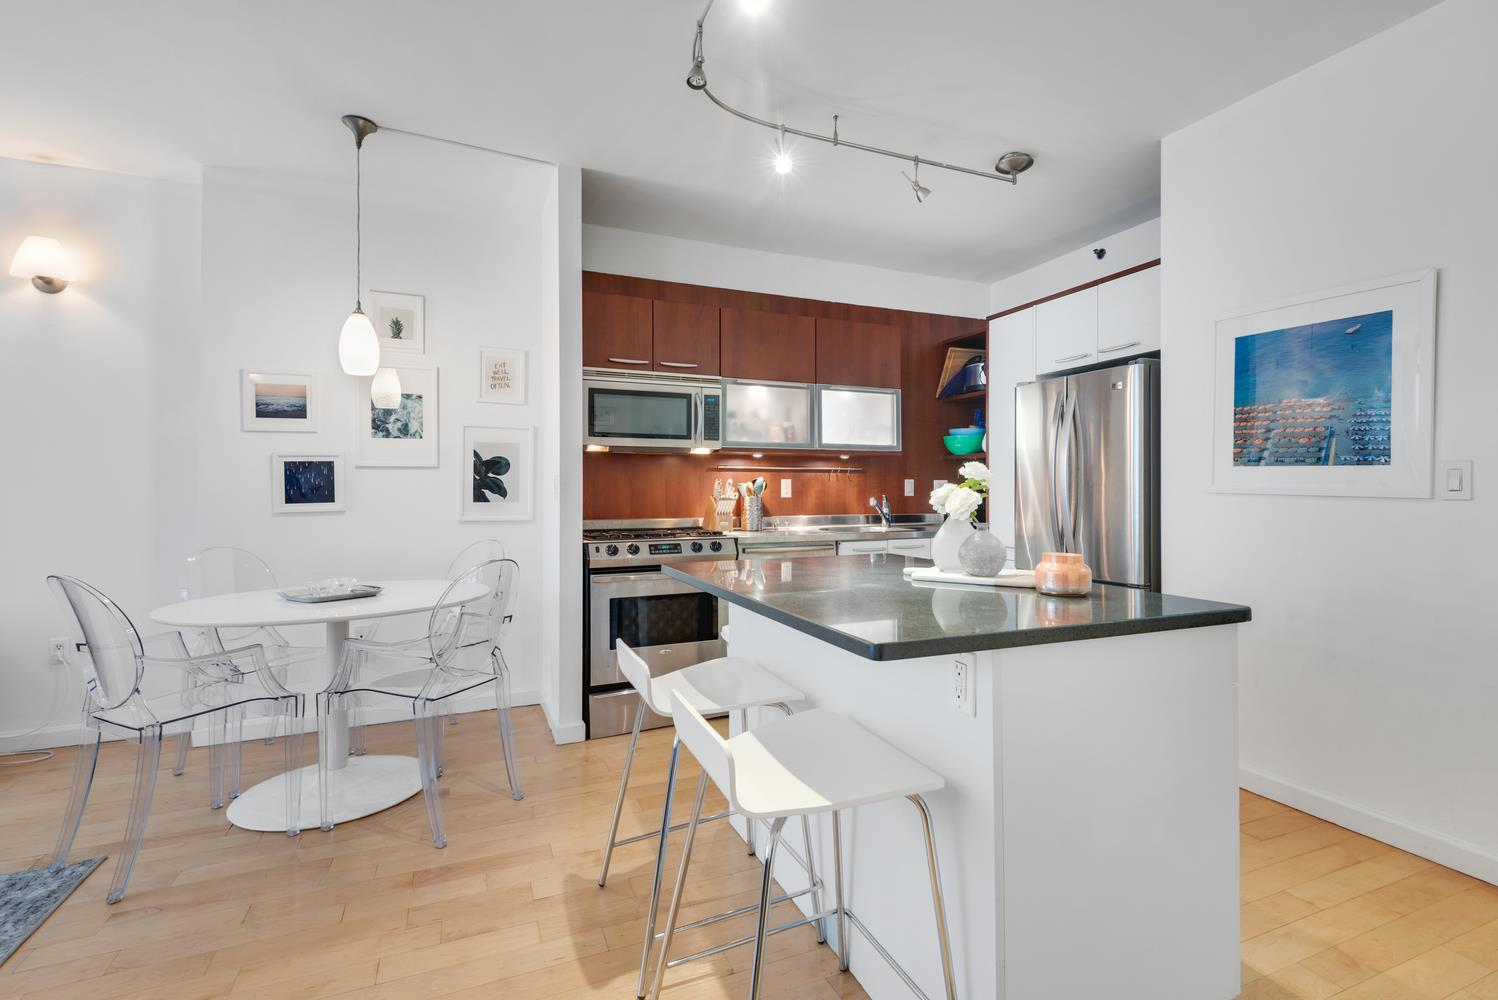 This immaculate, loft-style 1BR/1BA condominium is located in the heart of Chelsea. The spacious layout features large living and bedroom areas, high ceilings, California closets, and wide-plank maple floors. The kitchen counts stainless steel appliances including a dishwasher and microwave, a washer/dryer, a garbage disposal and a fully functional island with granite counter tops. The spacious, spa-like bathroom has marble tiles and an oversized vanity.The Campiello Collection is a pet friendly, boutique condo building with a full-time doorman, common roof deck and garden, as well as a fully equipped gym.APARTMENT FEATURES : Beamed Ceiling, Hardwood Floors, Oversized Windows, Modern Kitchen, Renovated Bathroom, Marble Bath, Storage Space, Washer/Dryer, DishwasherBUILDING FEATURES: Garden, Roof Deck, Exercise Room, Video Security, Guard, CableTV, Internet, PackageRoom, HealthClubPets will be considered with extra security deposit.